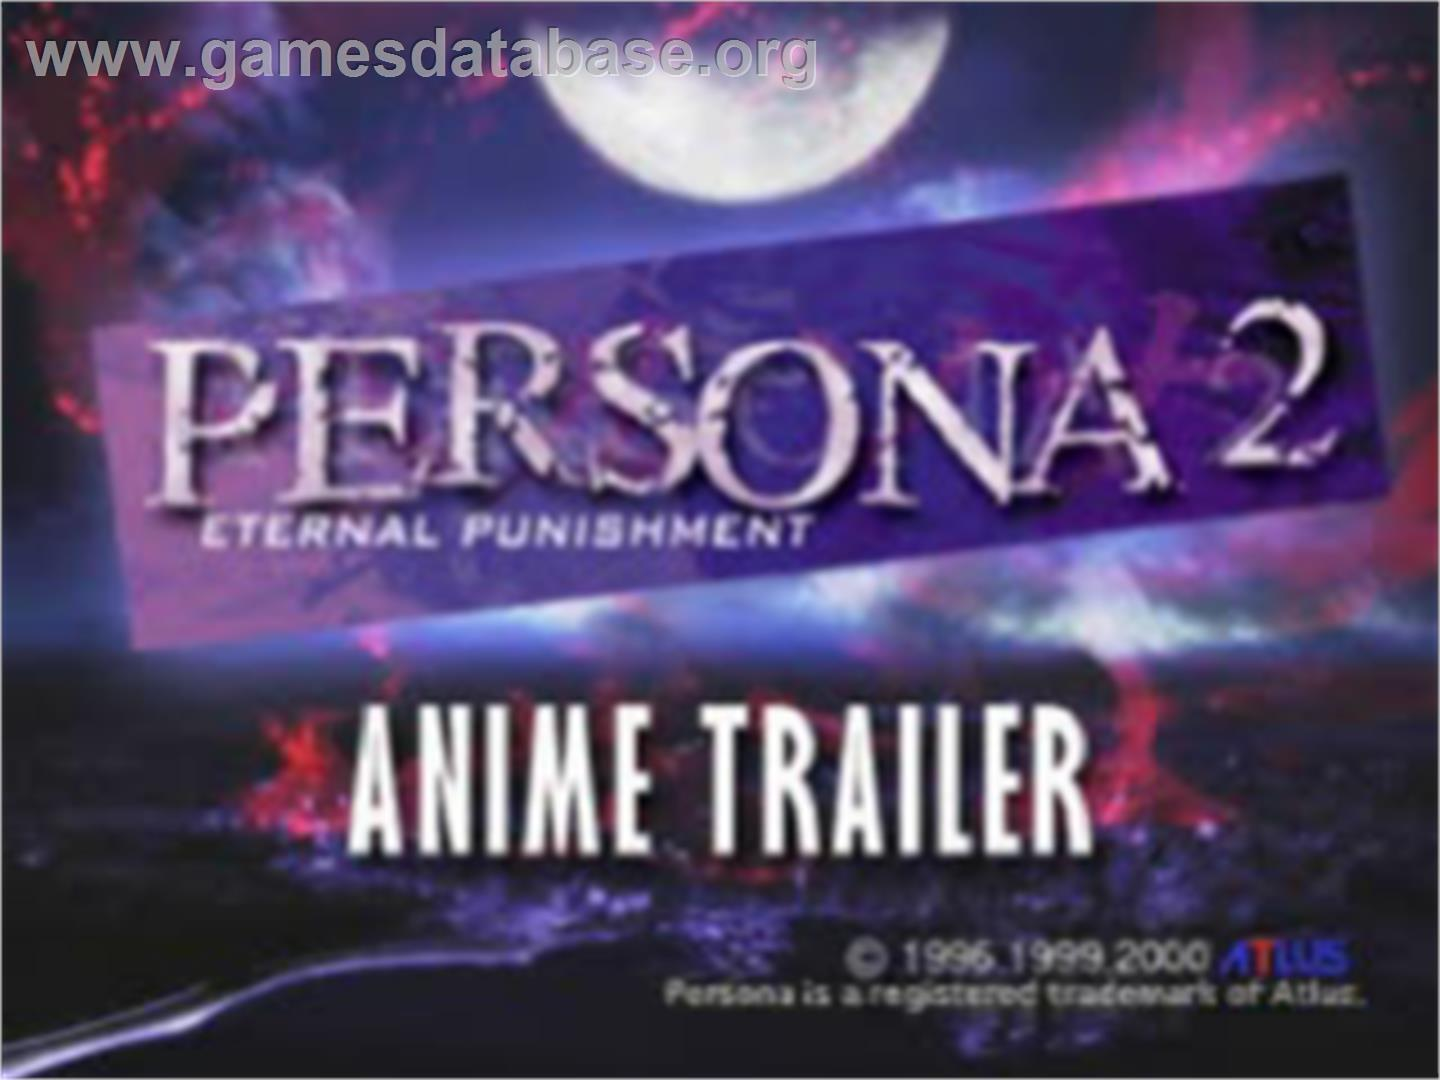 Persona 2: Eternal Punishment - Sony Playstation - Artwork - Title Screen